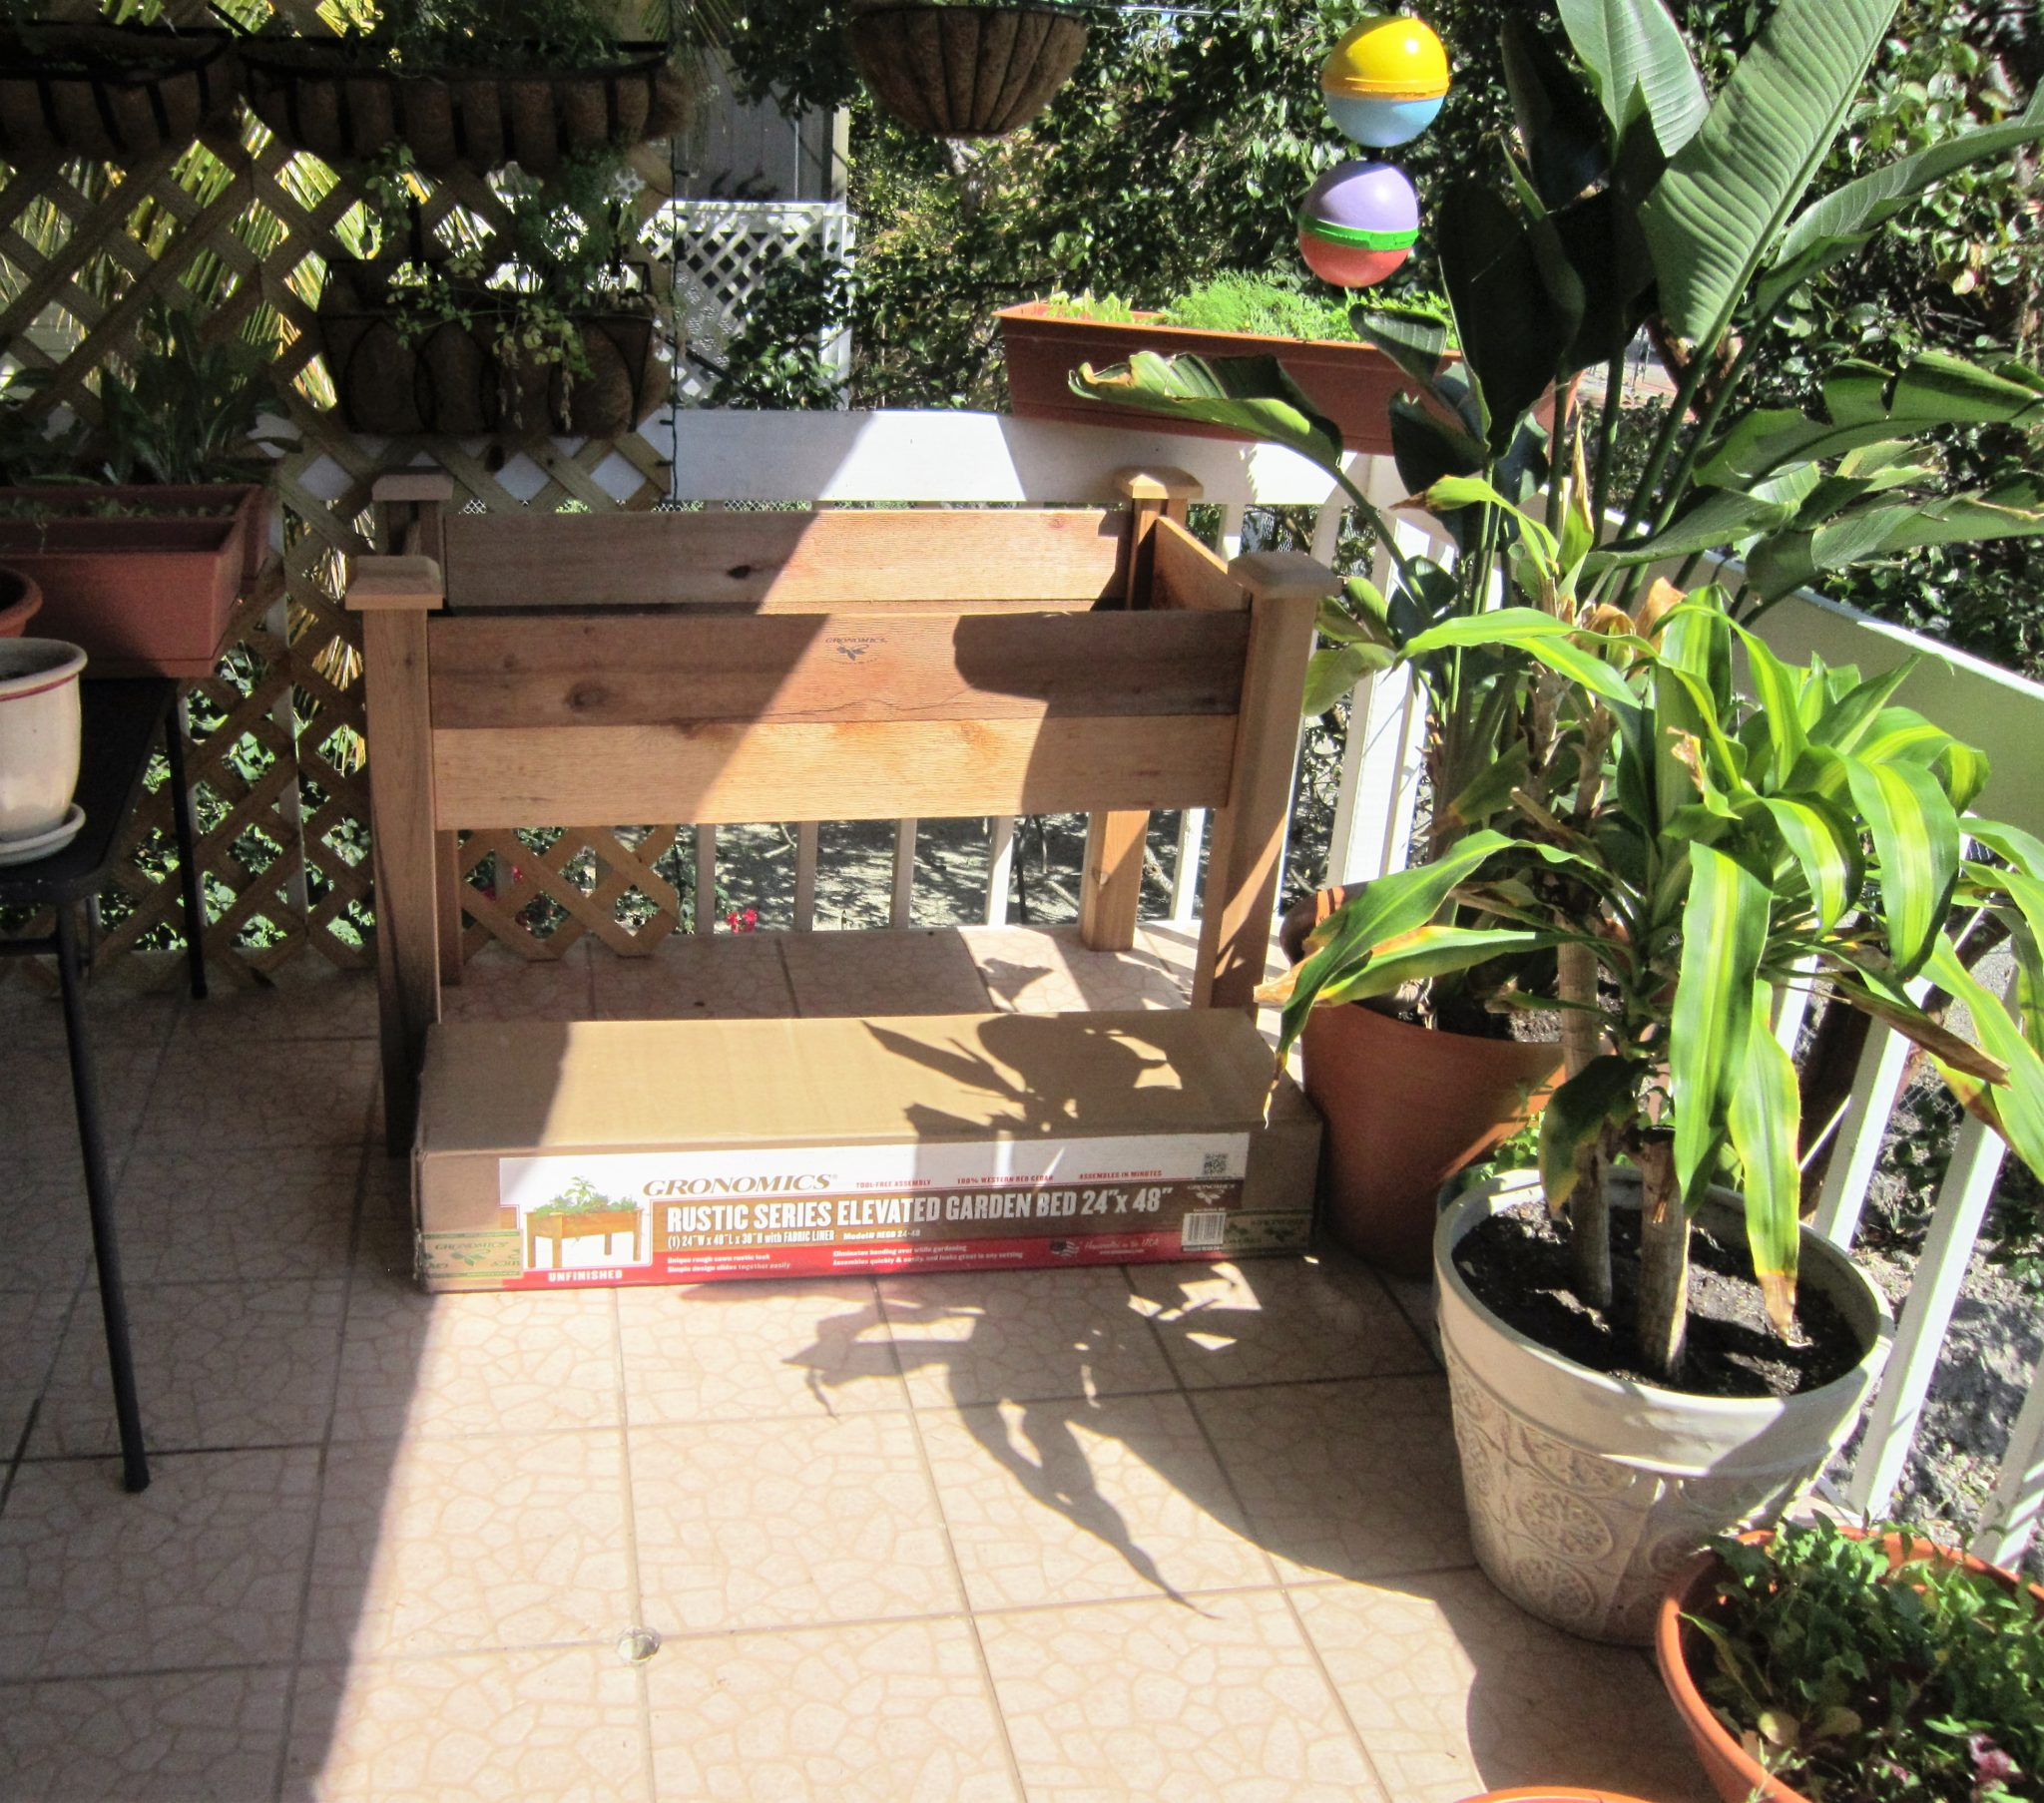 Gronomics Raised Garden Beds; The Good, The Bad and The Ugly